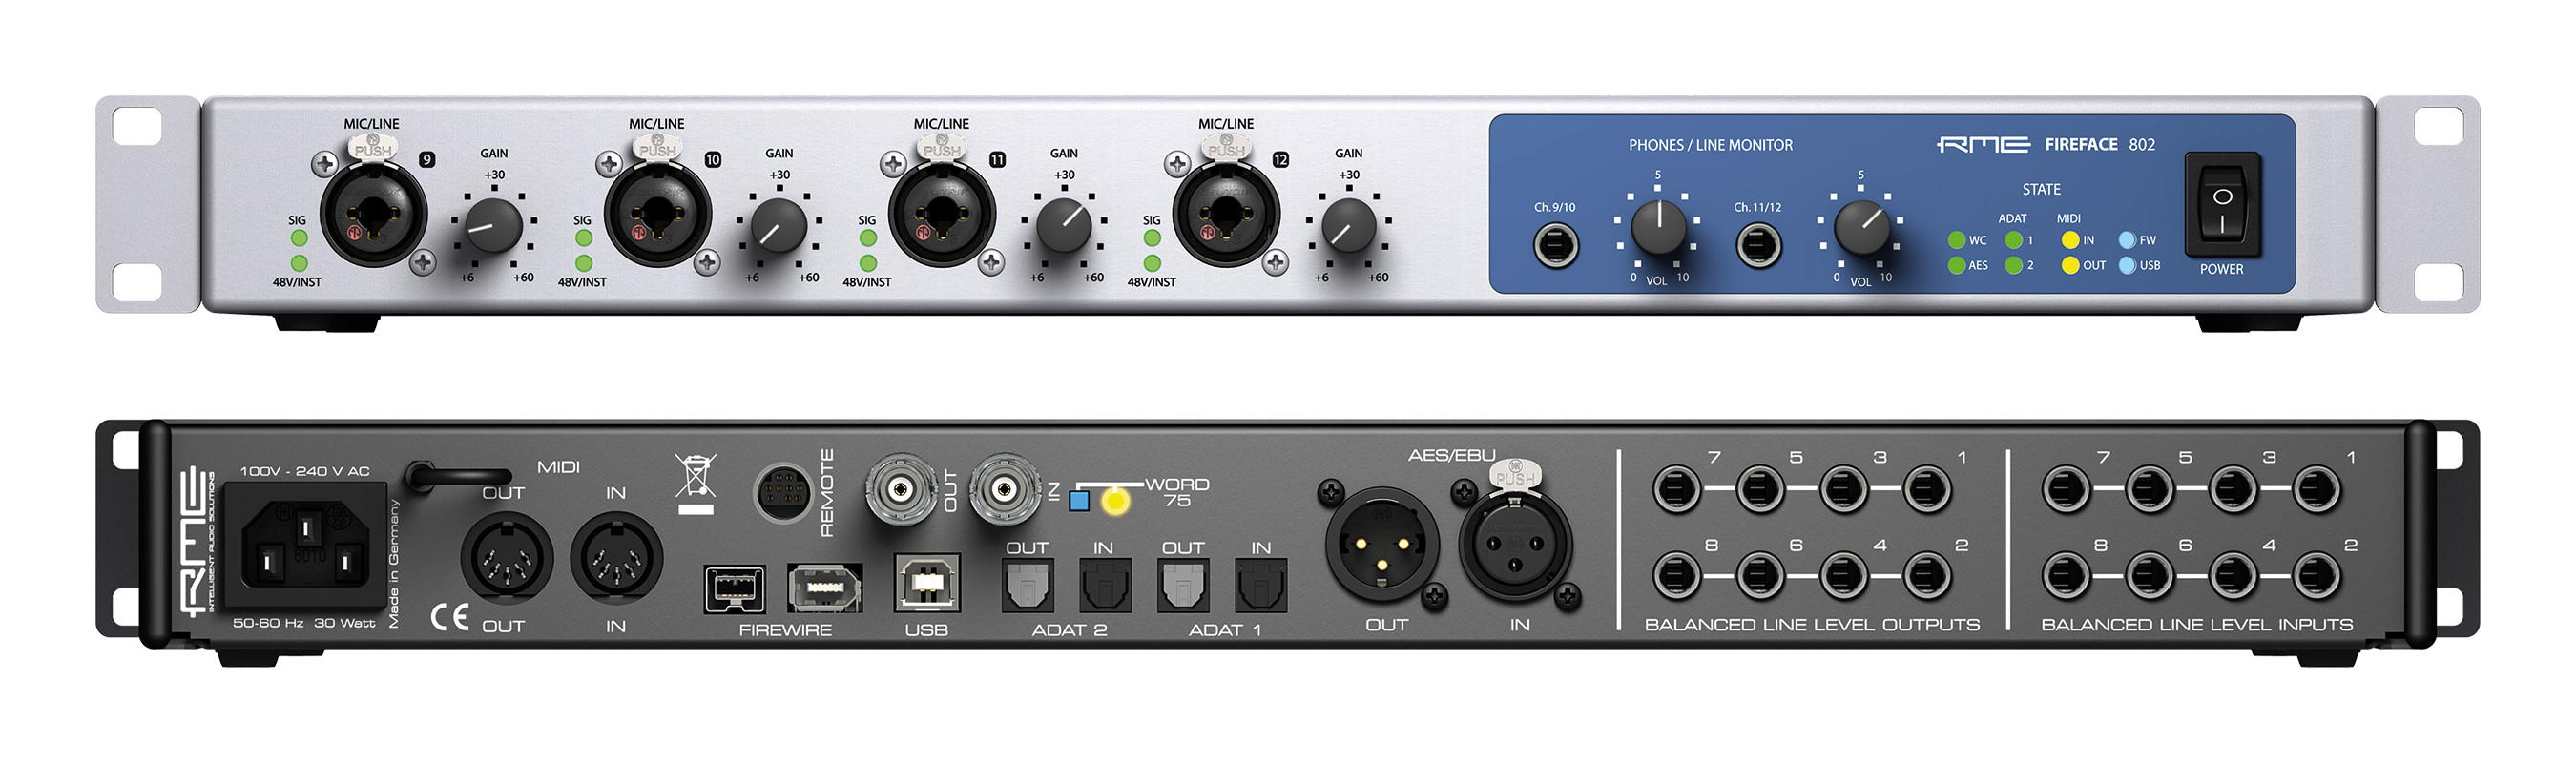 RME Fireface 802 audio interface introduced at Musikmesse